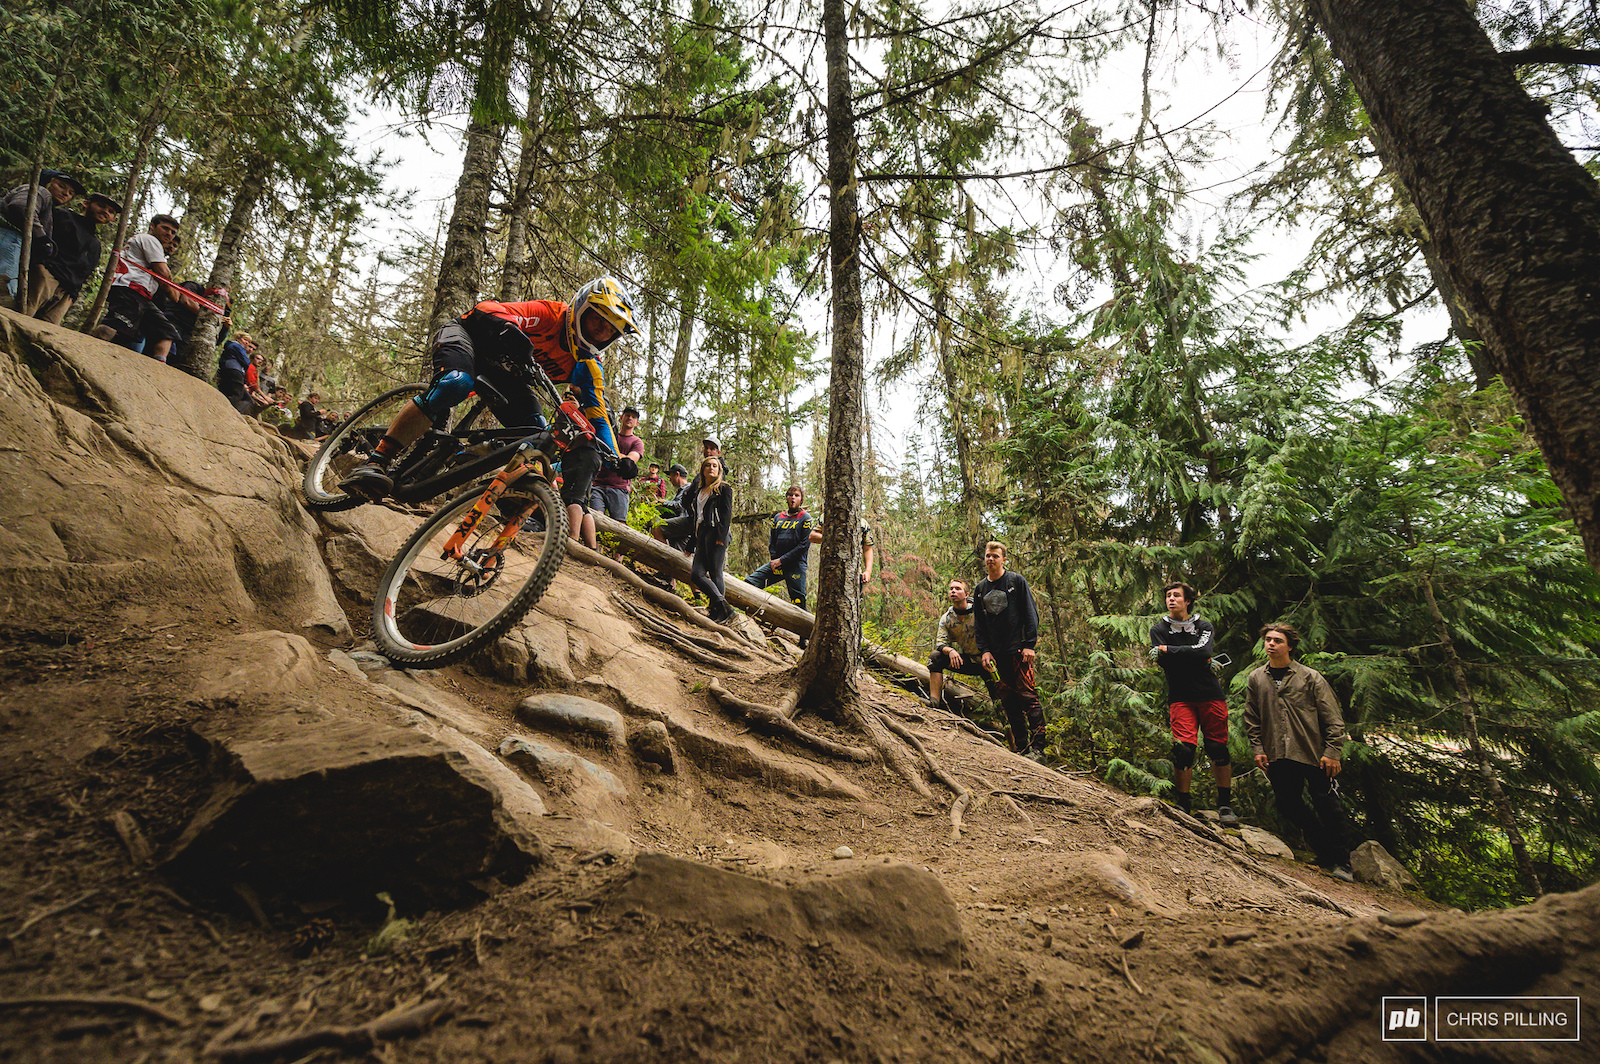 The last bit of tech is some of the most daunting on the course with wheel swallowing holes and a steep grade. Zakarias Blom Johansen makes light work of it though